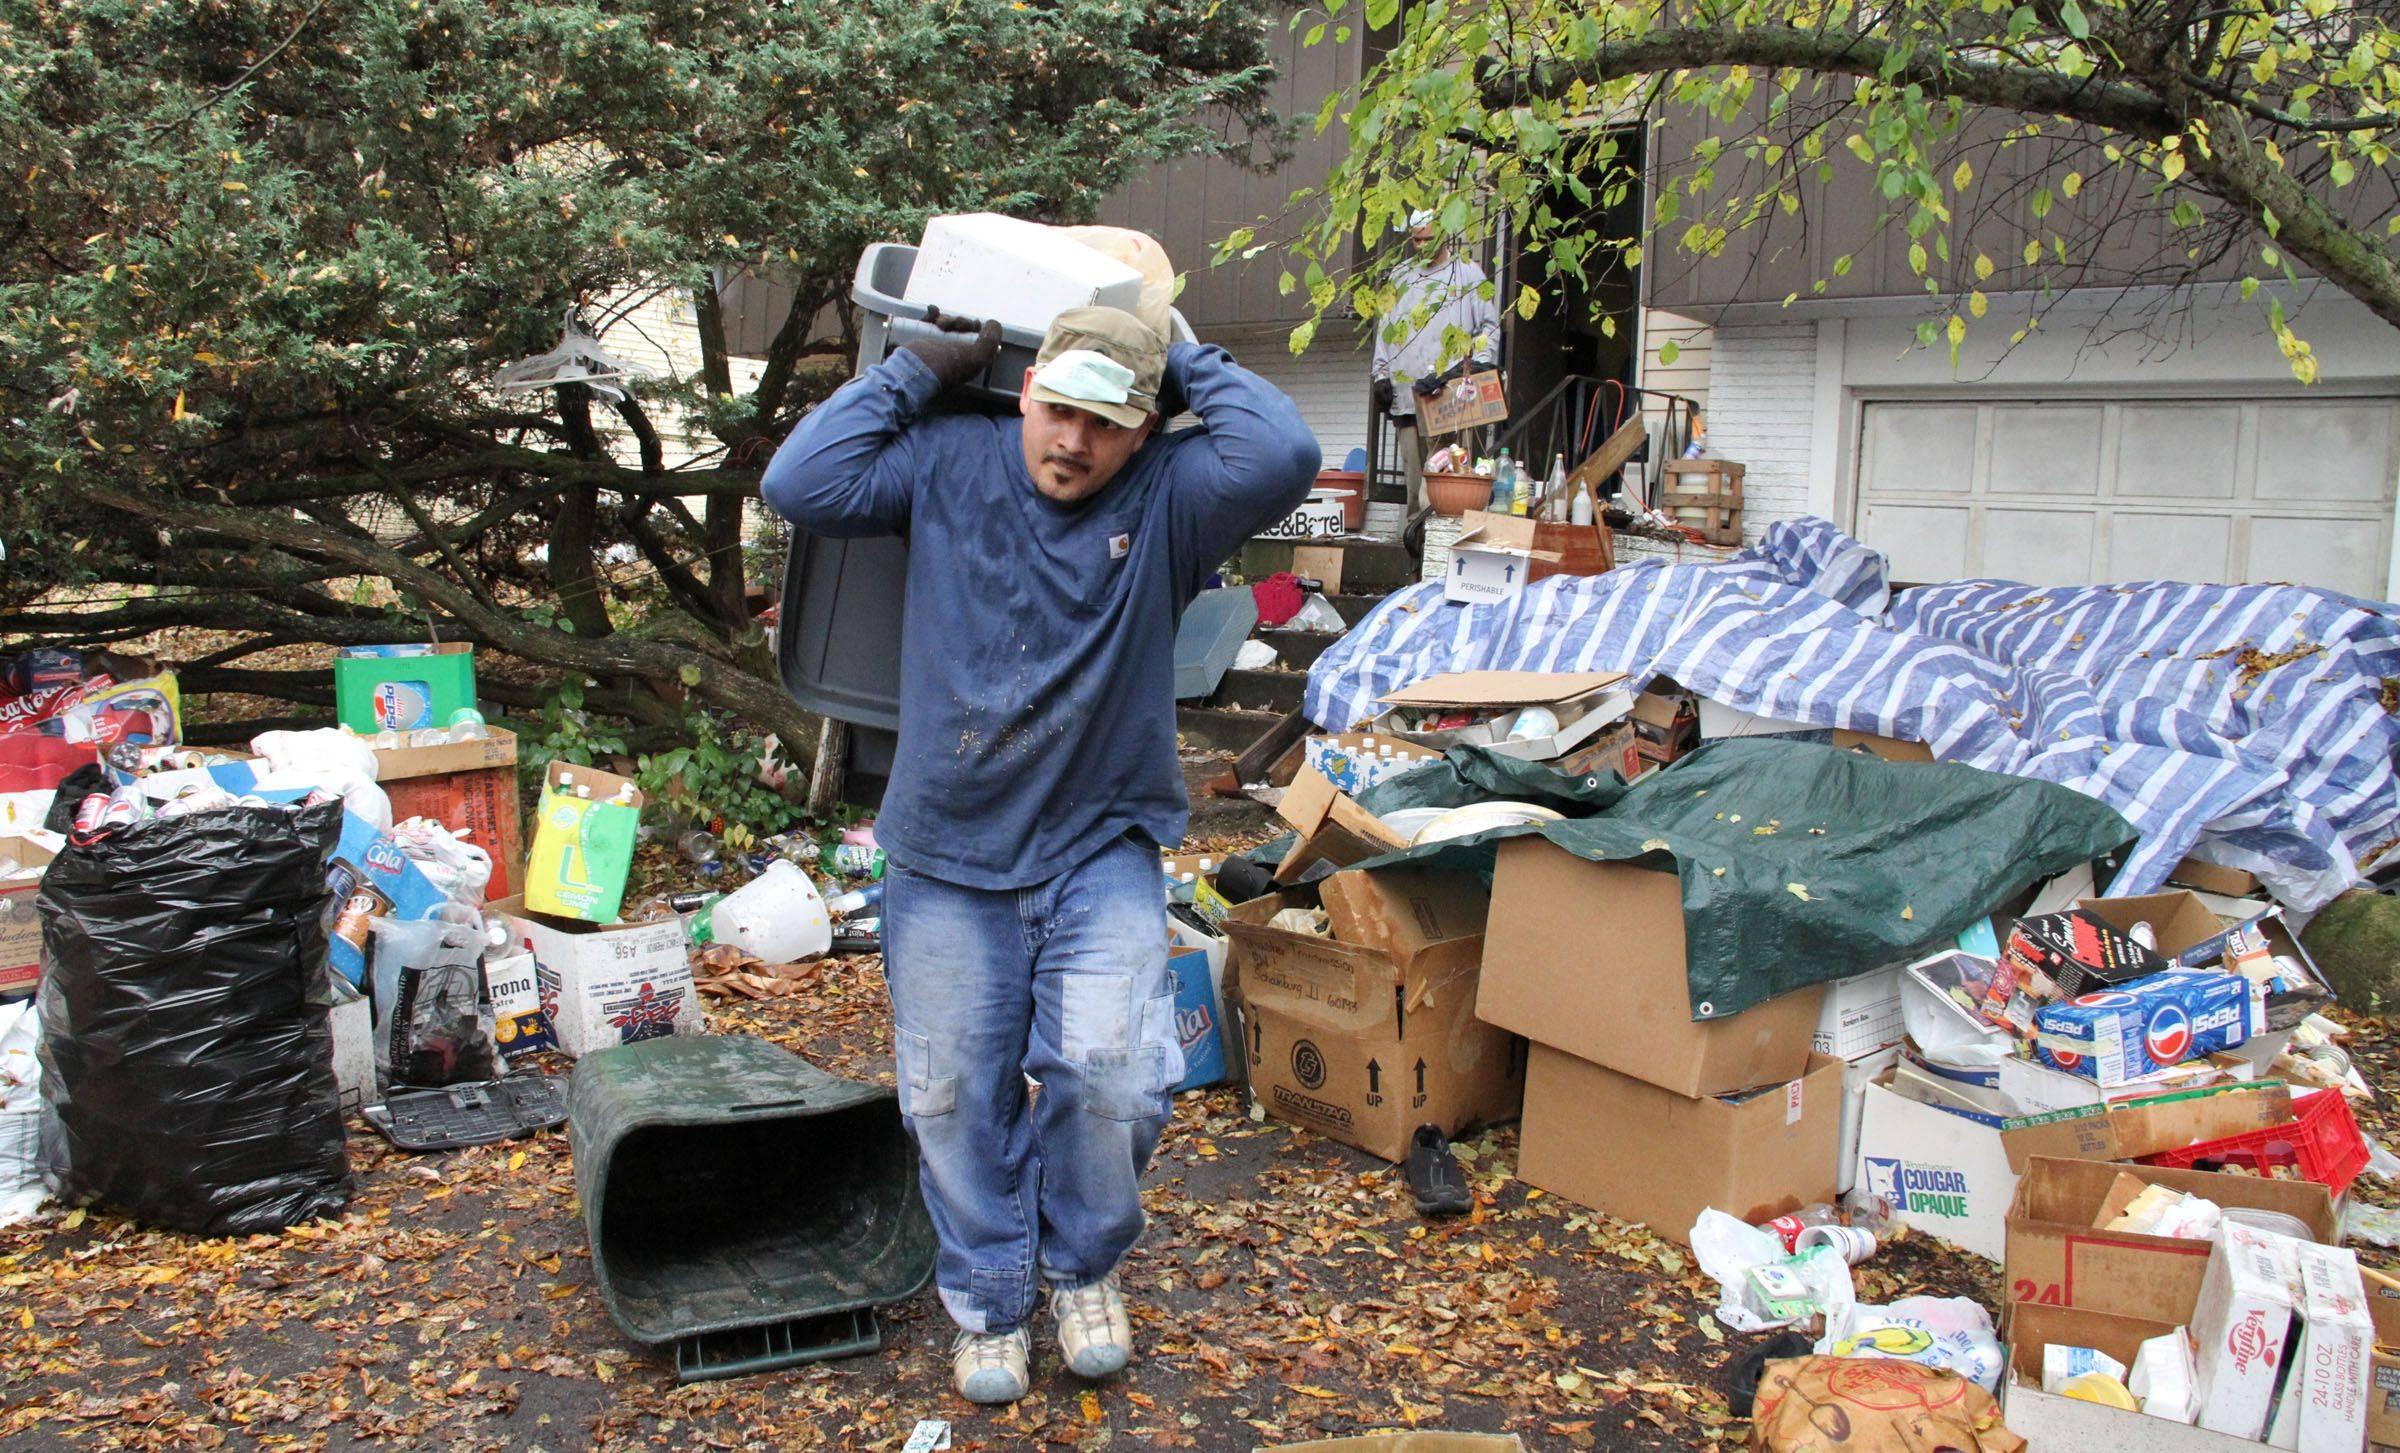 Workers with Junk King began removing plastic, cardboard and other rubbish from the Schaumburg home of John Wuerffel on Wednesday morning.